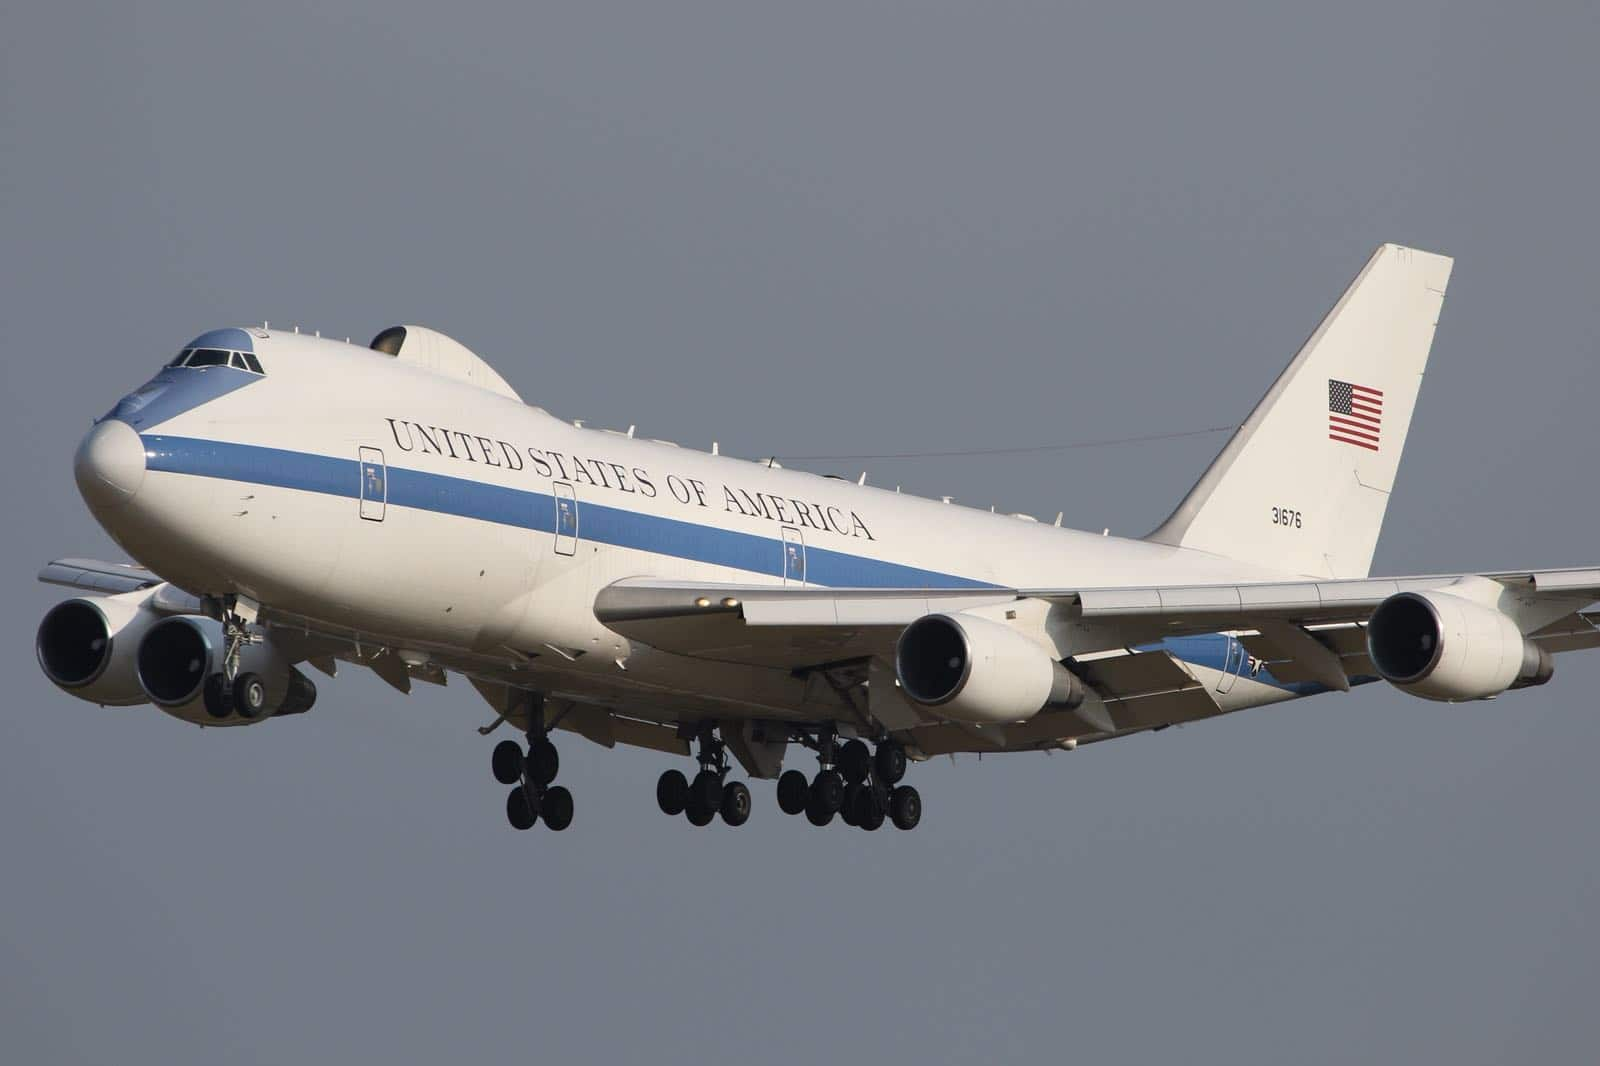 boeing e4b air force one